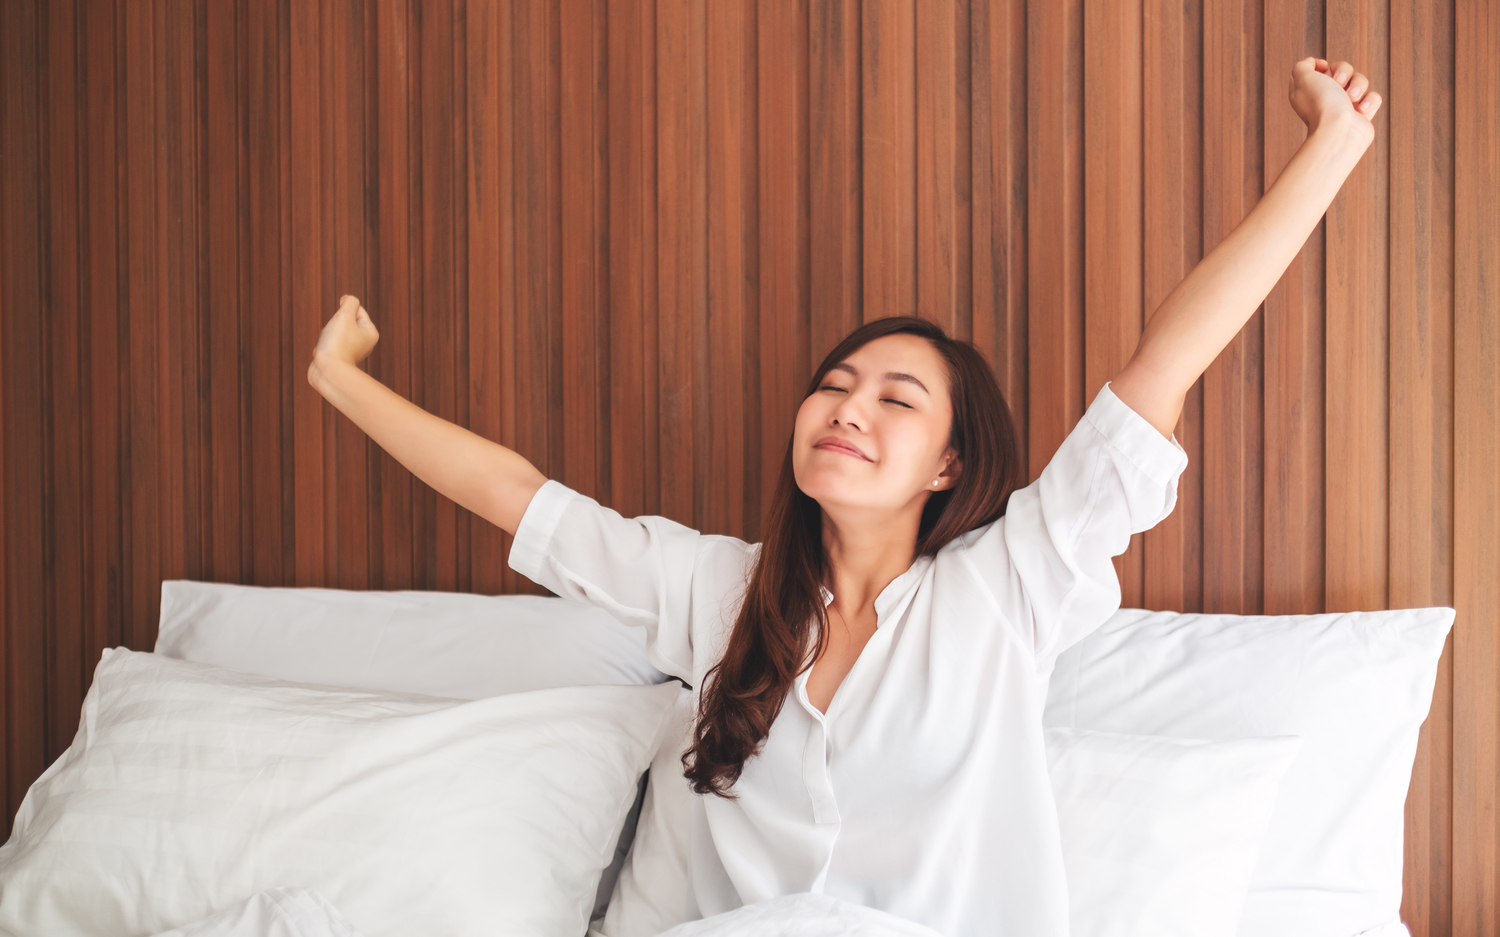 young woman waking up and doing stretches